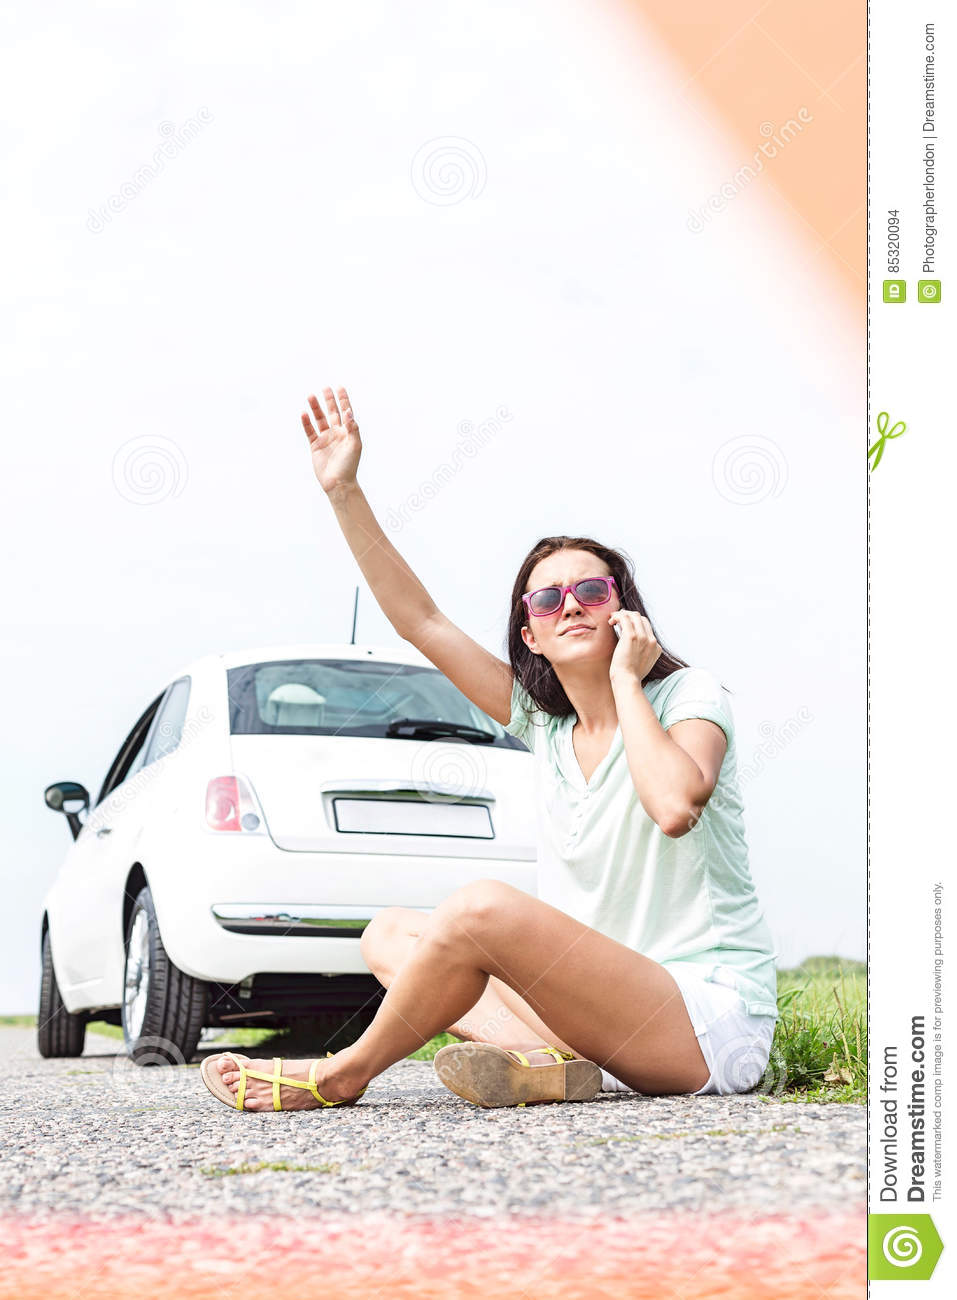 Frustrated woman hitchhiking while using cell phone by broken down car